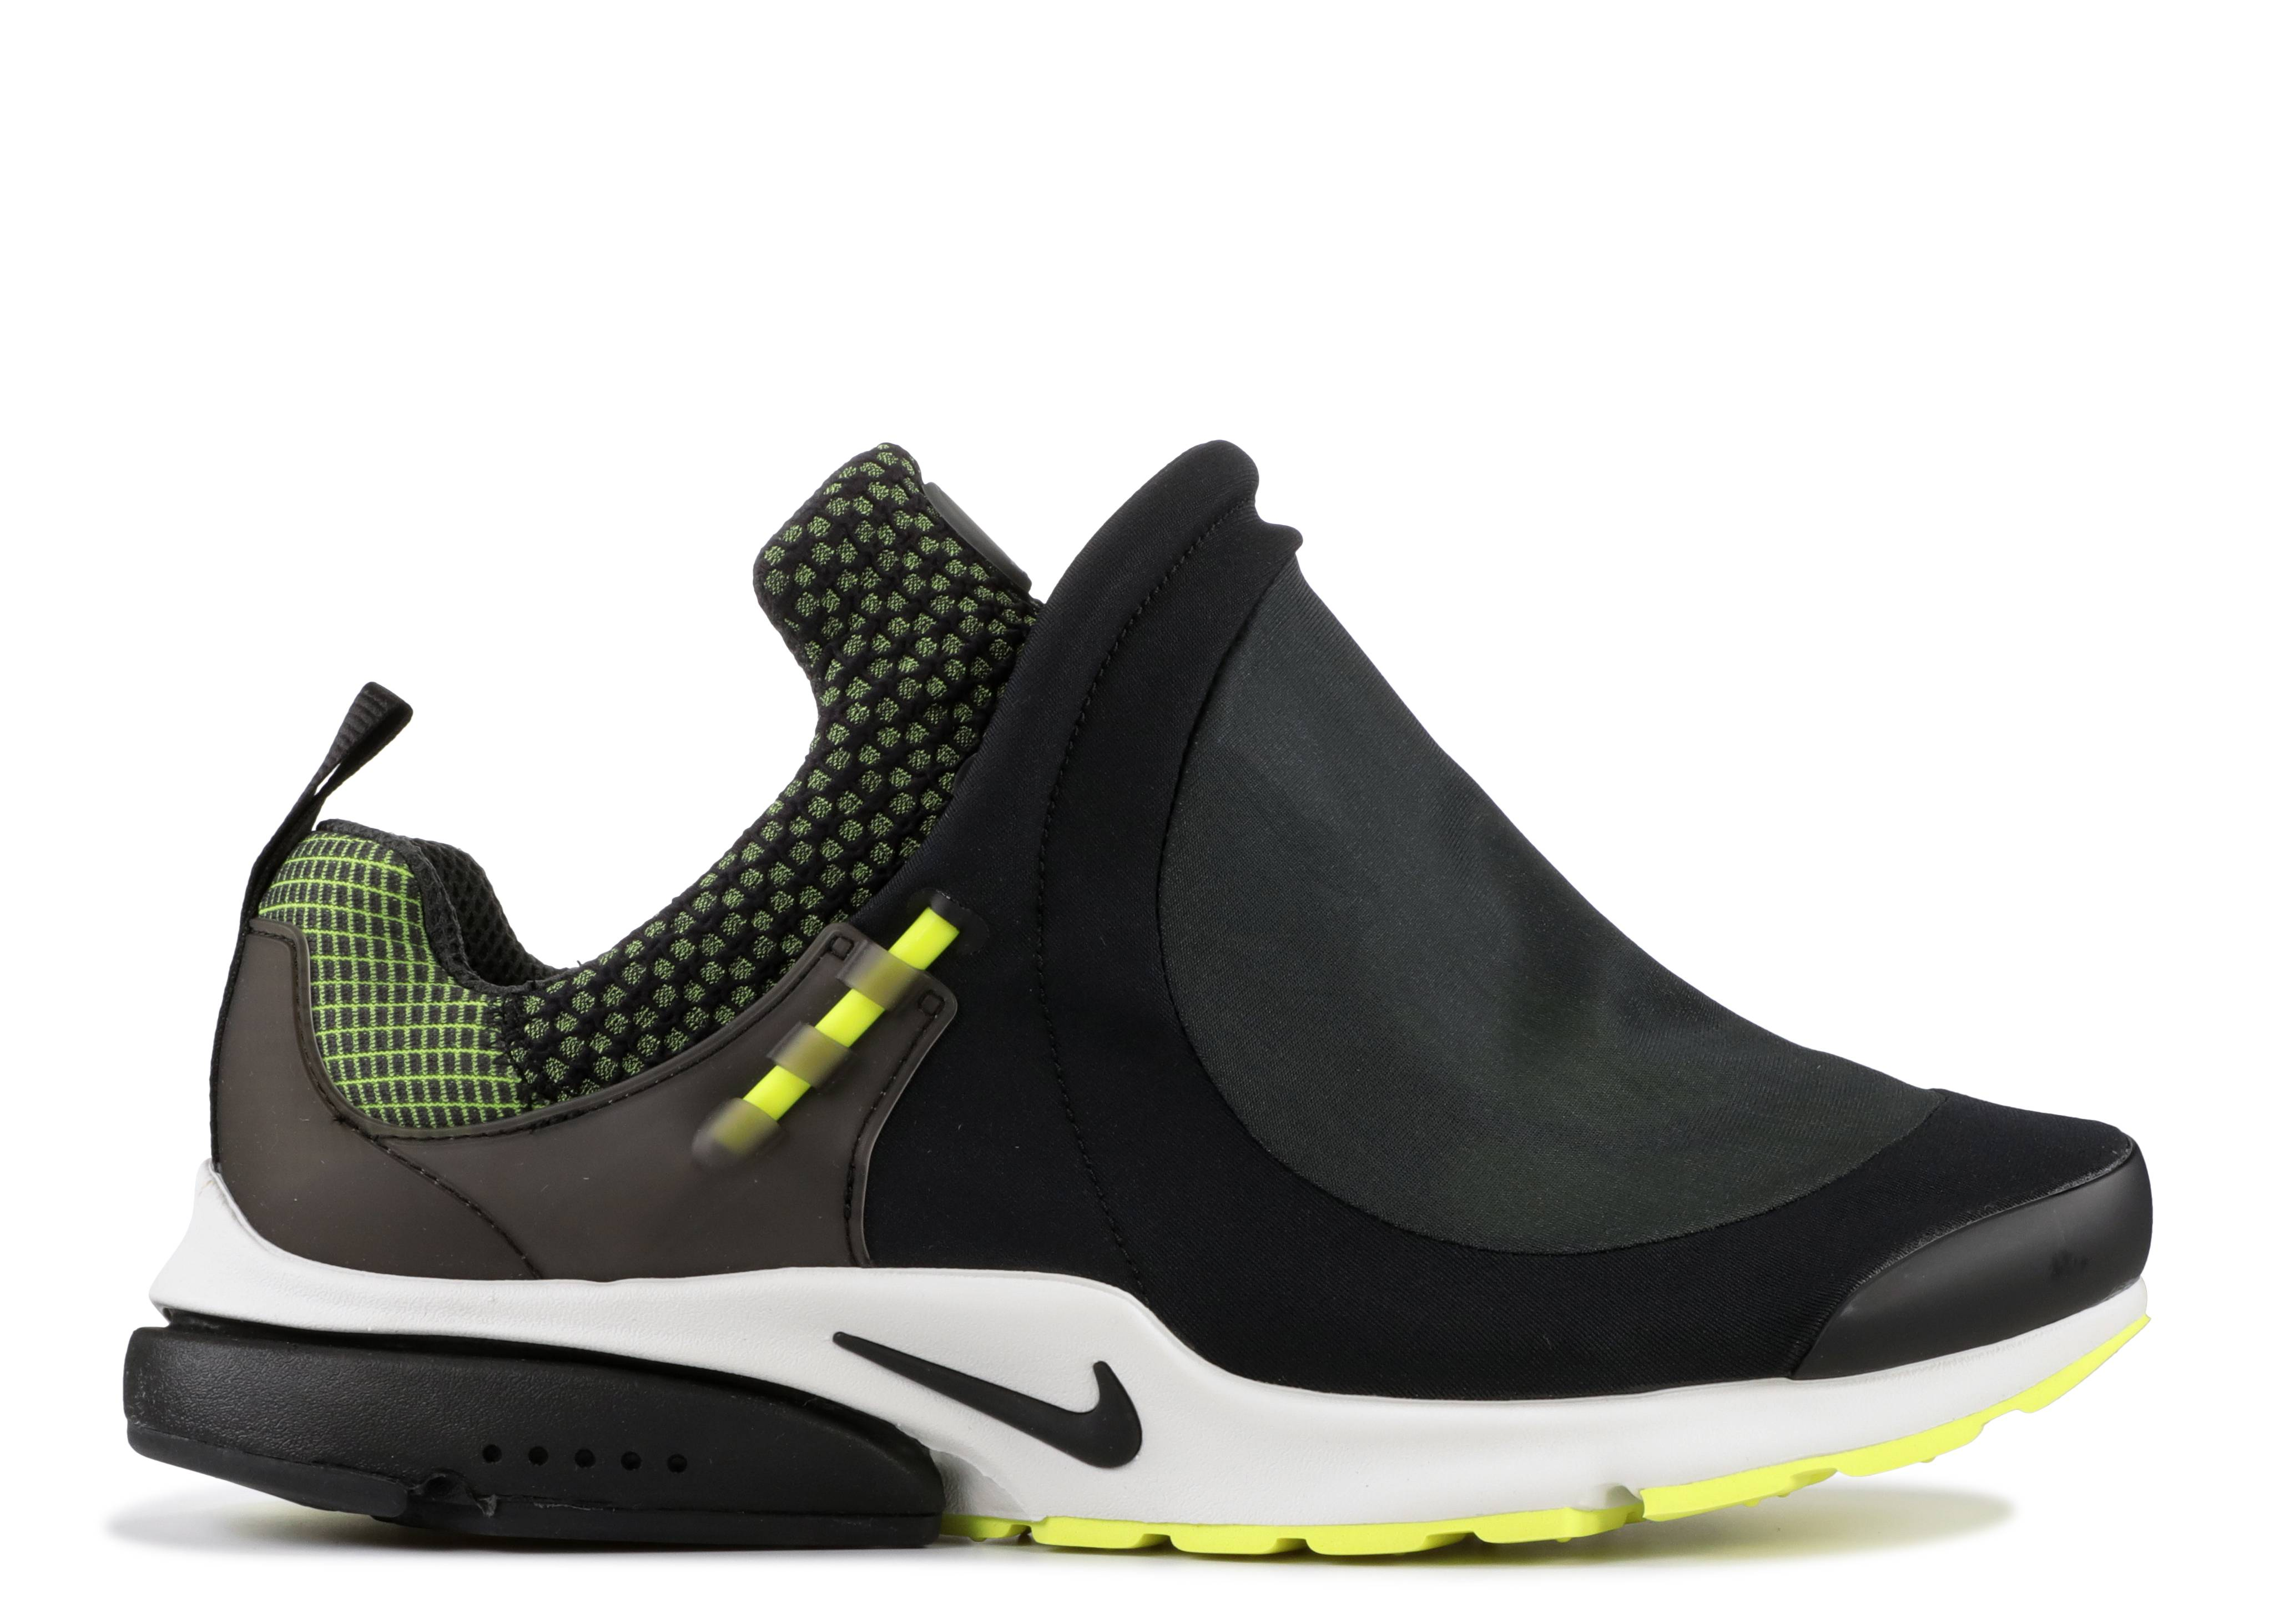 reputable site 31739 3c5d0 air presto